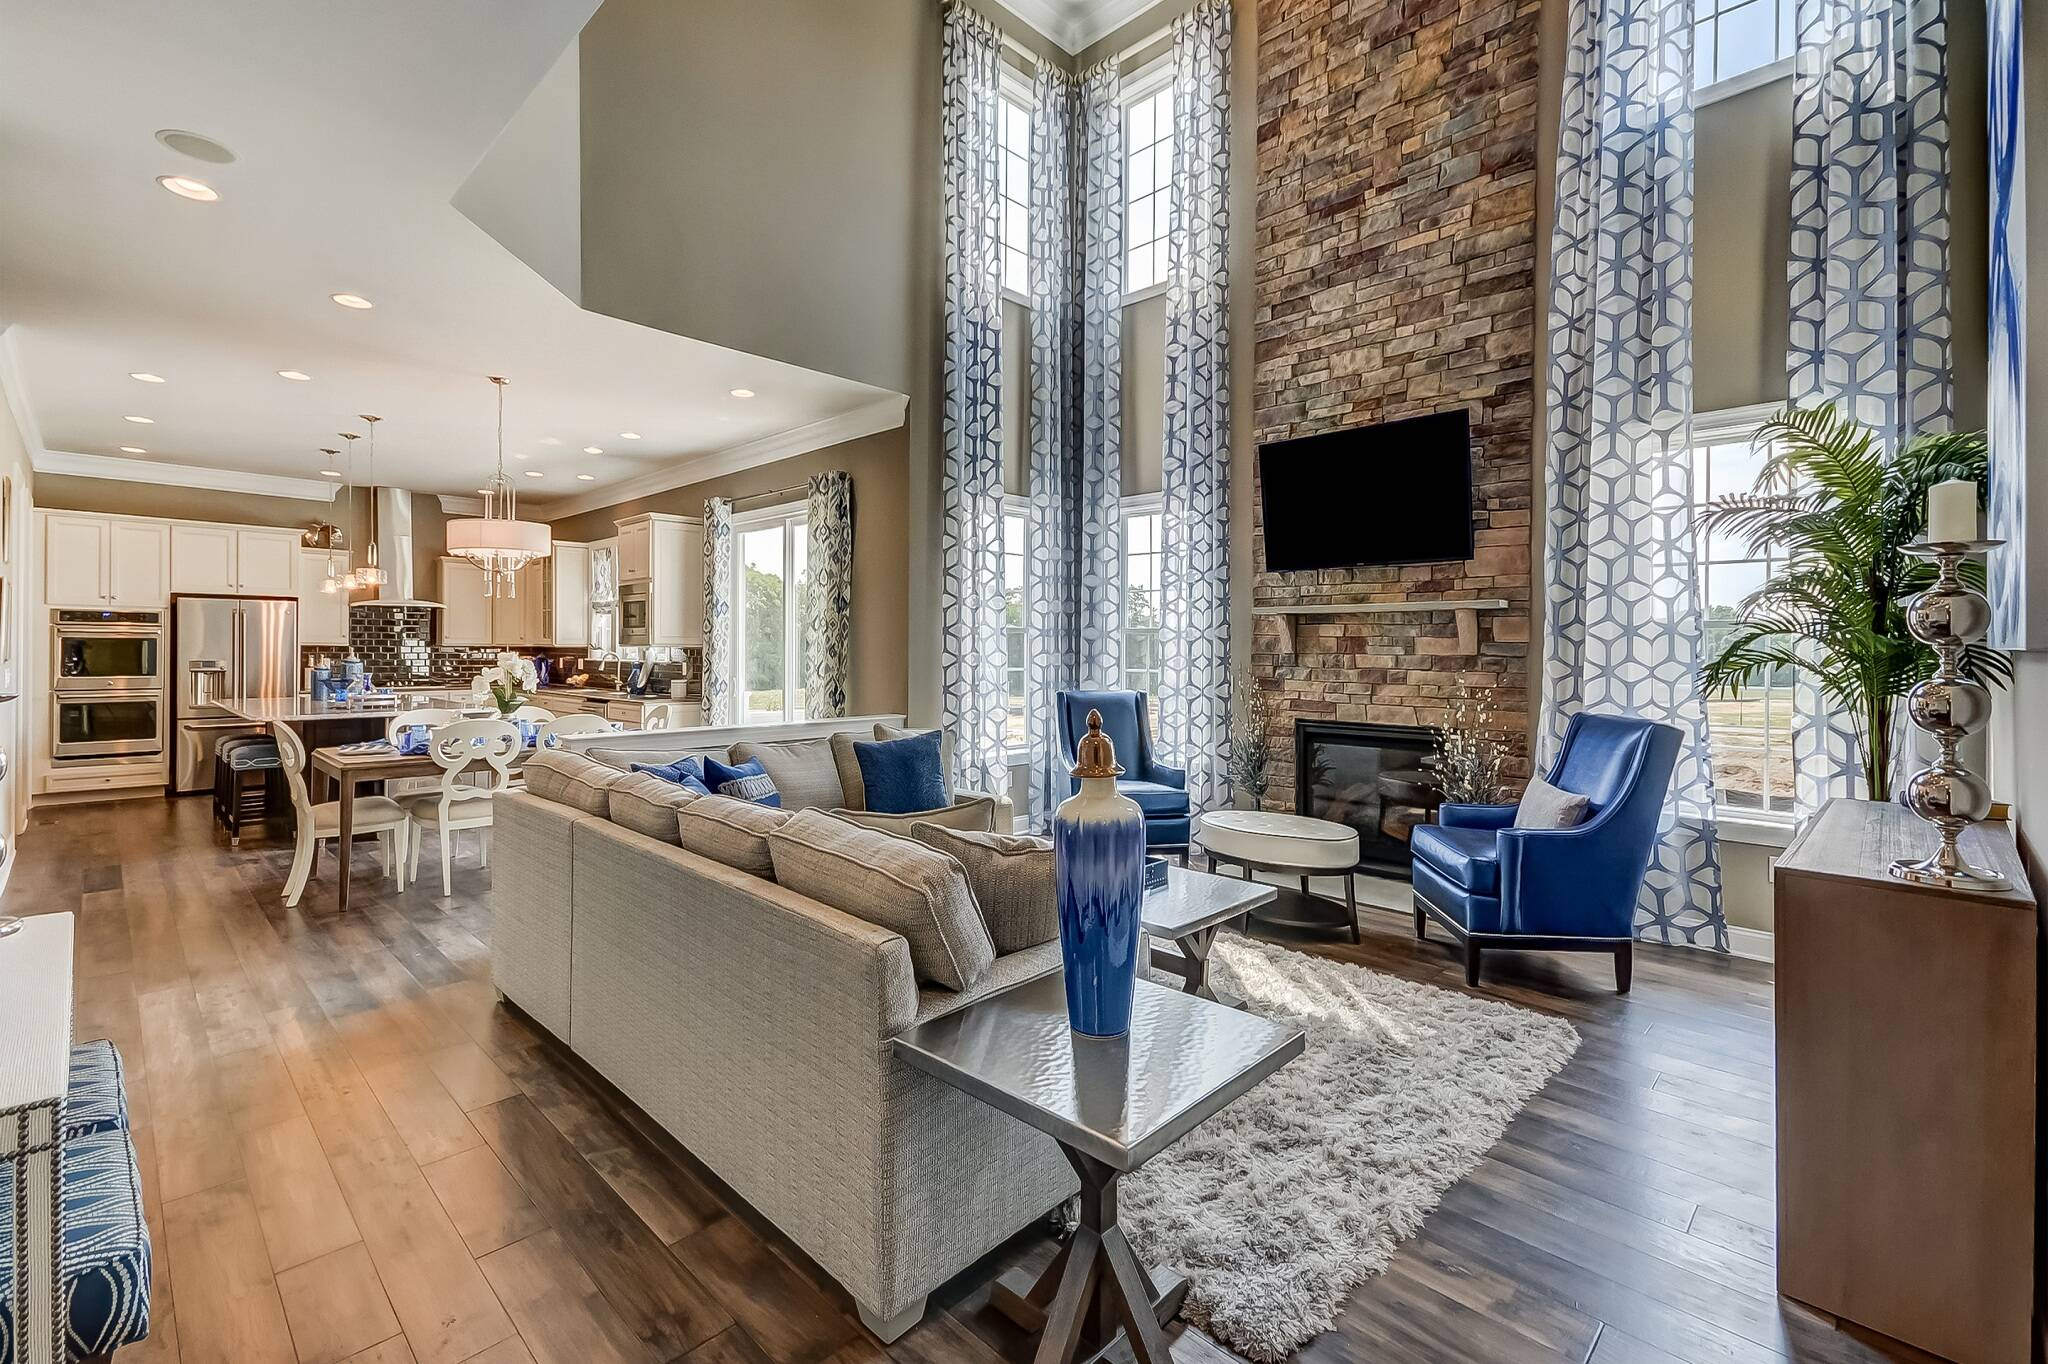 2048x1364khov_tanglewood-estates_boulder-ii_family-room